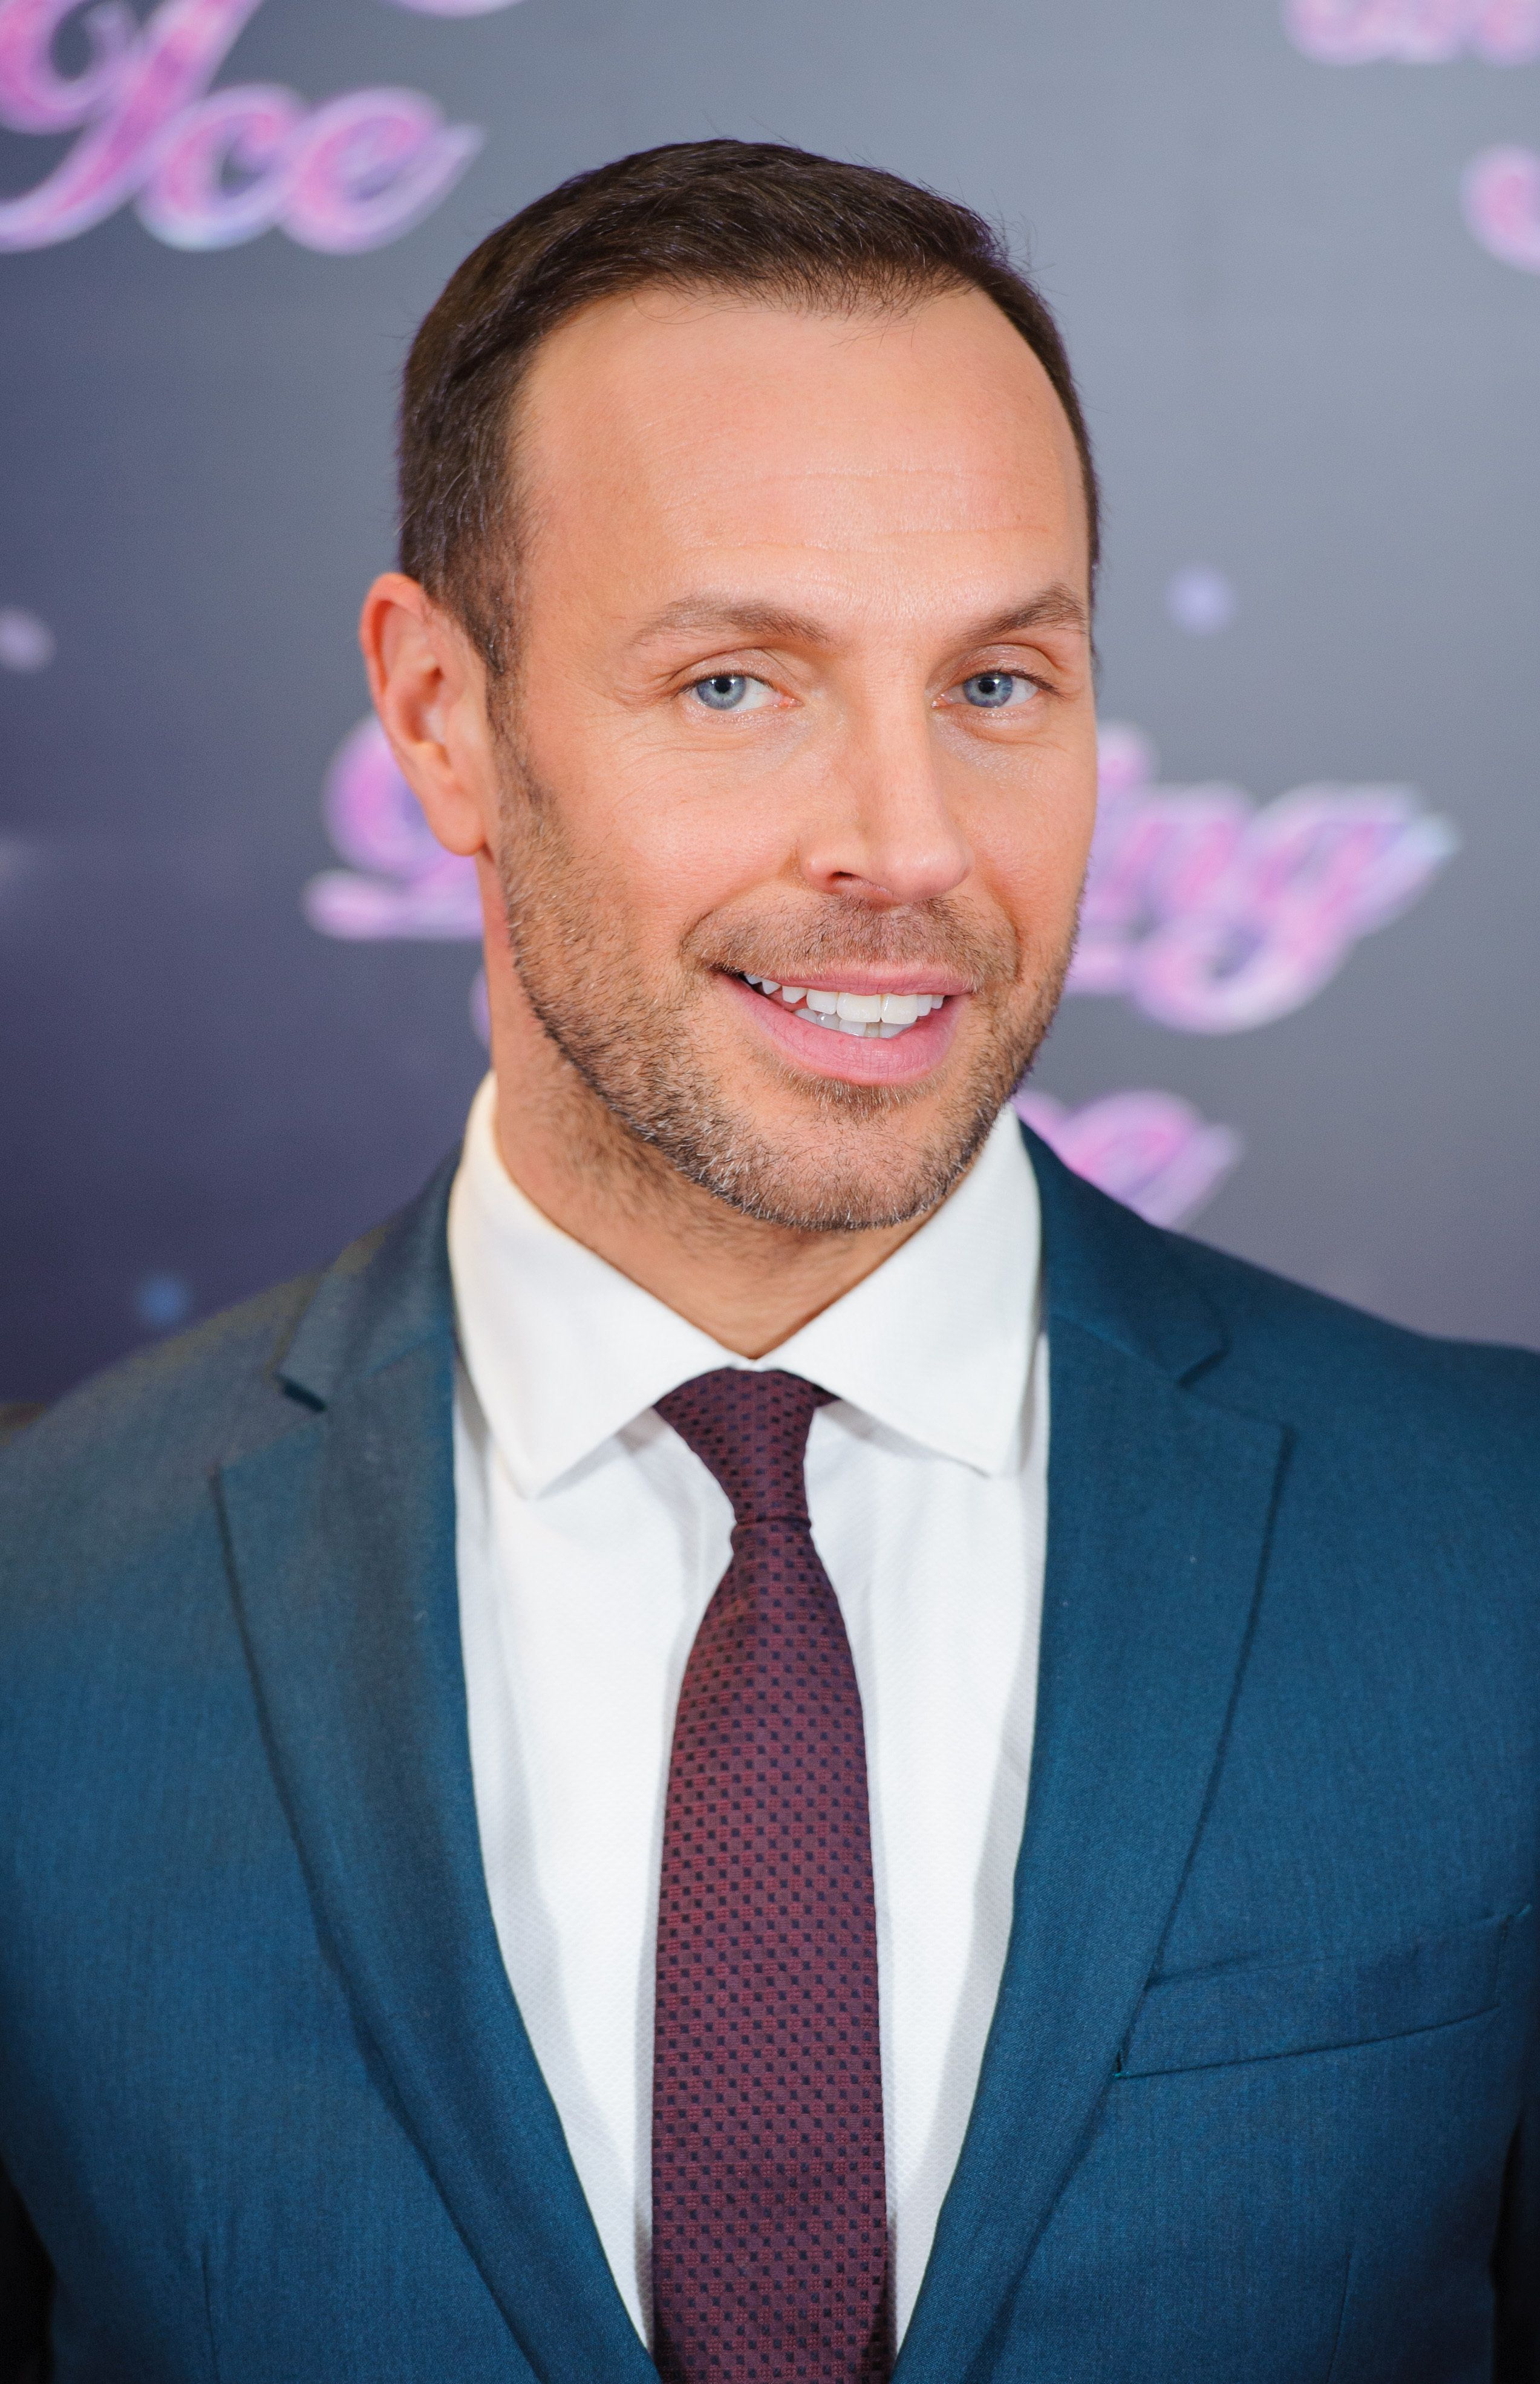 Confirmed! Jason Gardiner Will Be Returning To 'Dancing On